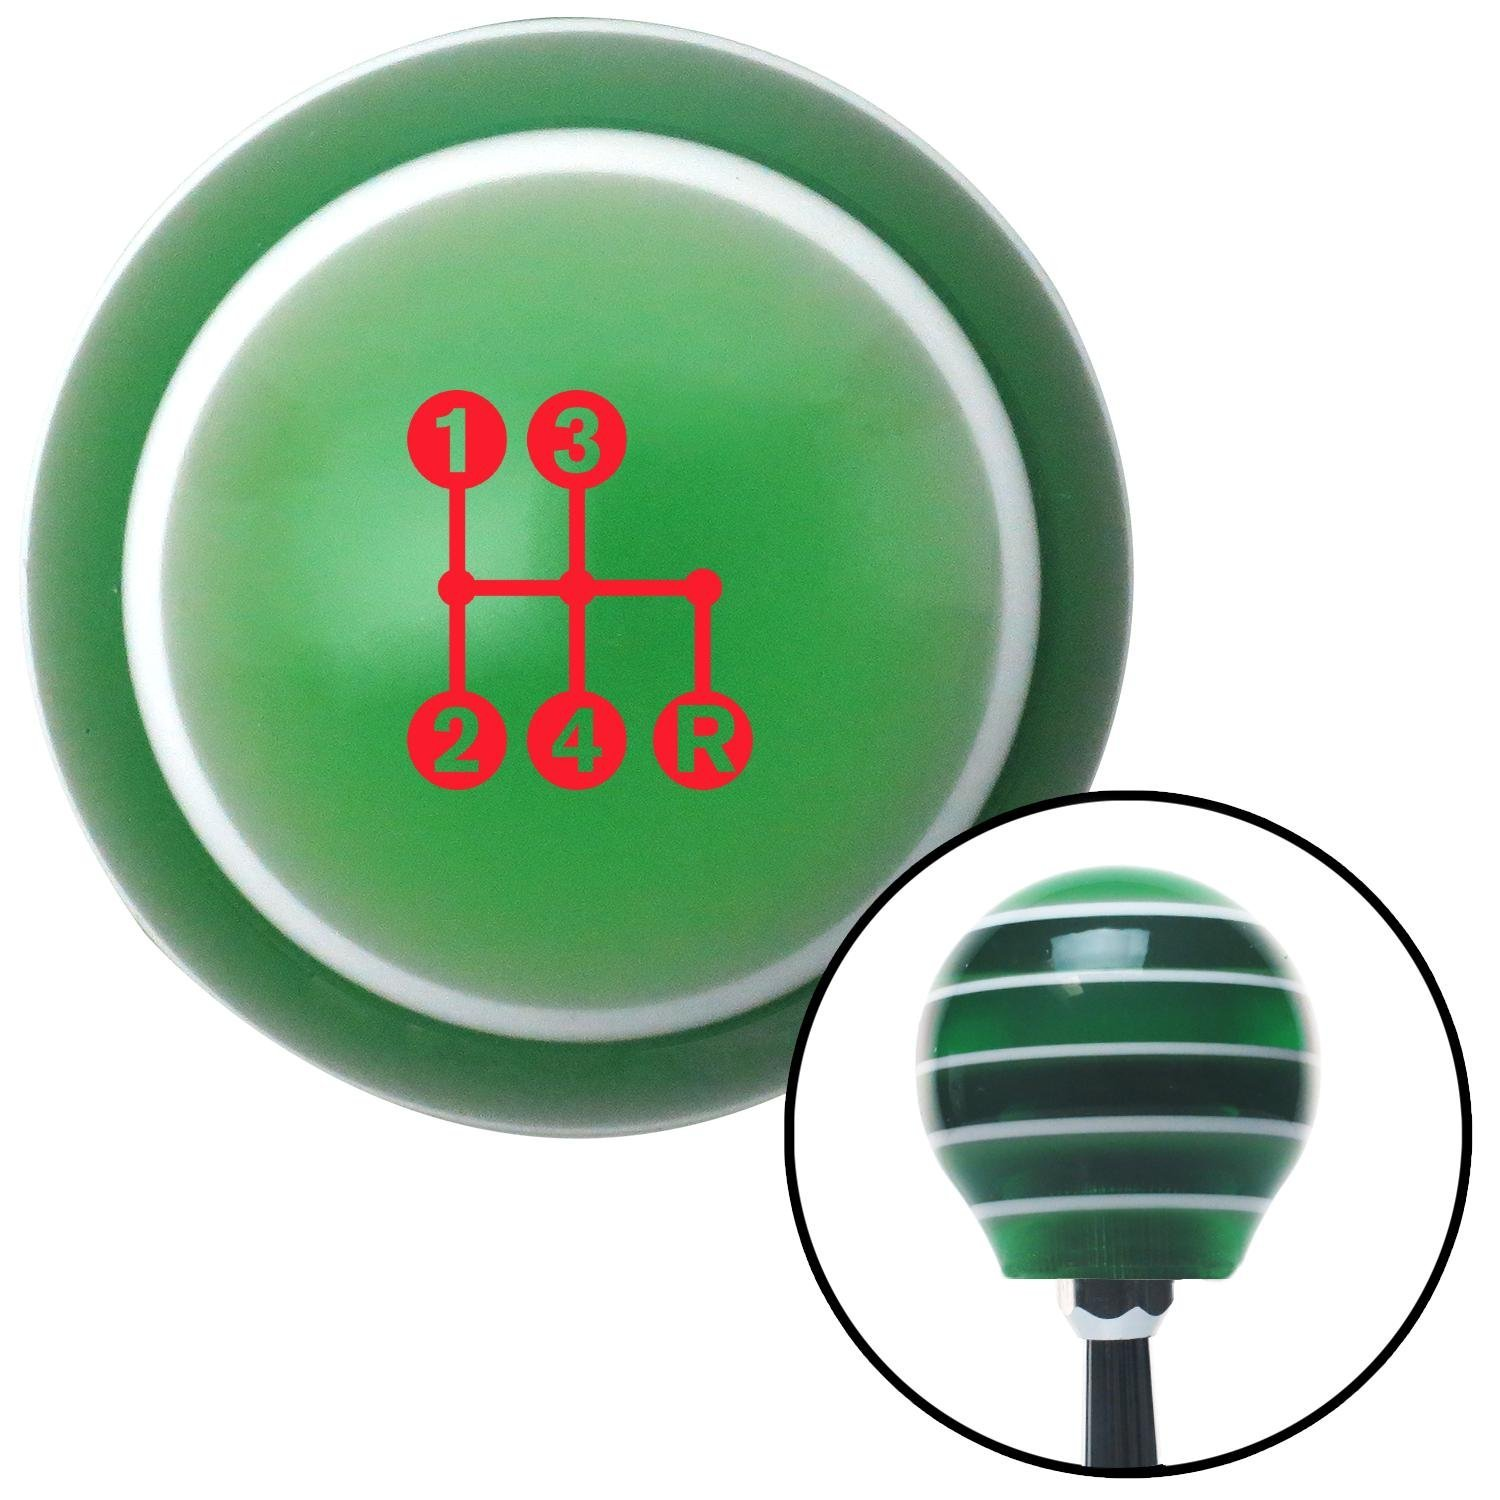 American Shifter 275607 Shift Knob Red 4 Speed Shift Pattern - Dots 6n Green Stripe with M16 x 1.5 Insert